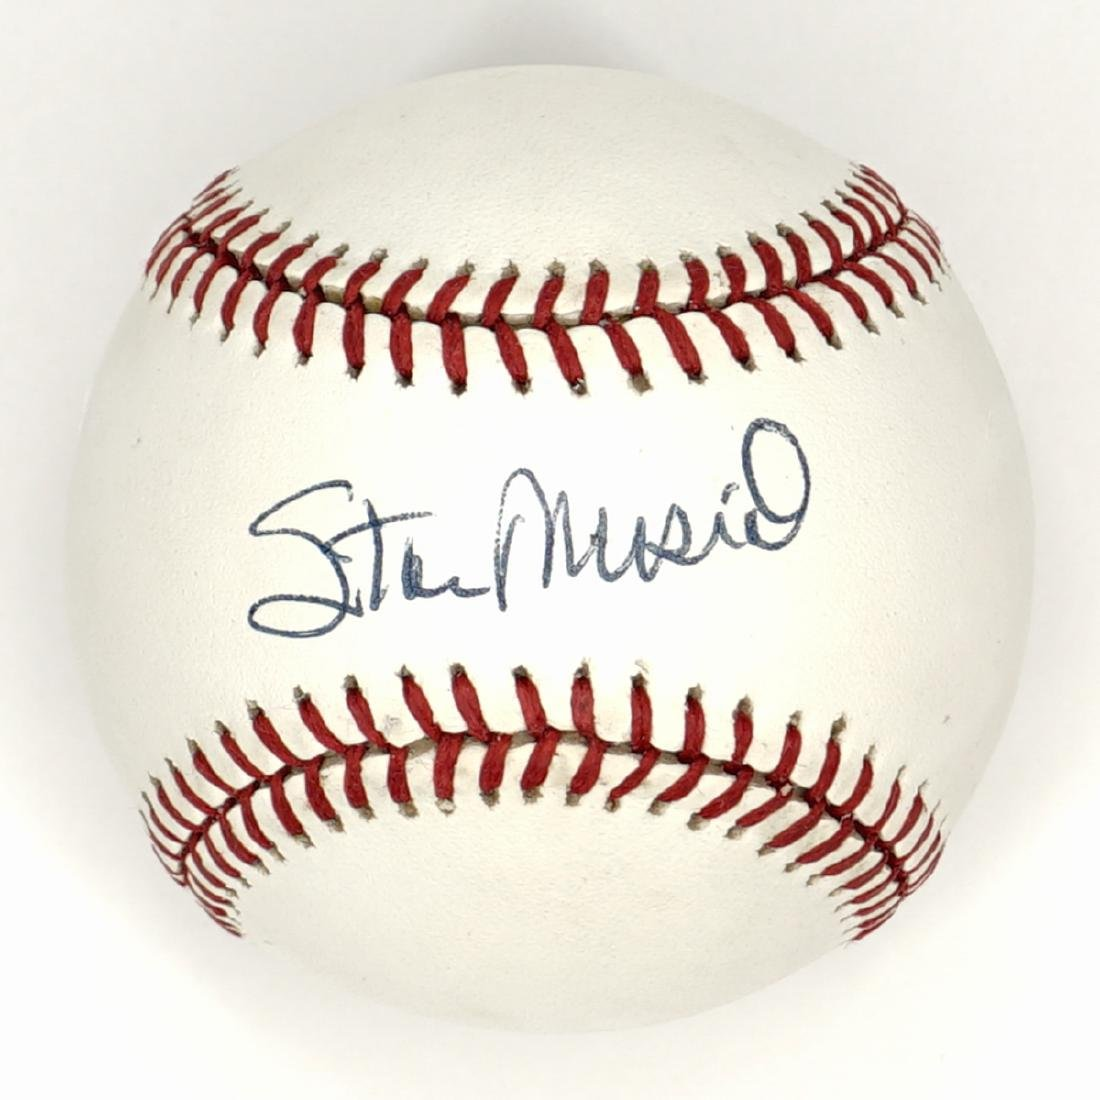 Stan Musial Single Signed Baseball Beckett COA